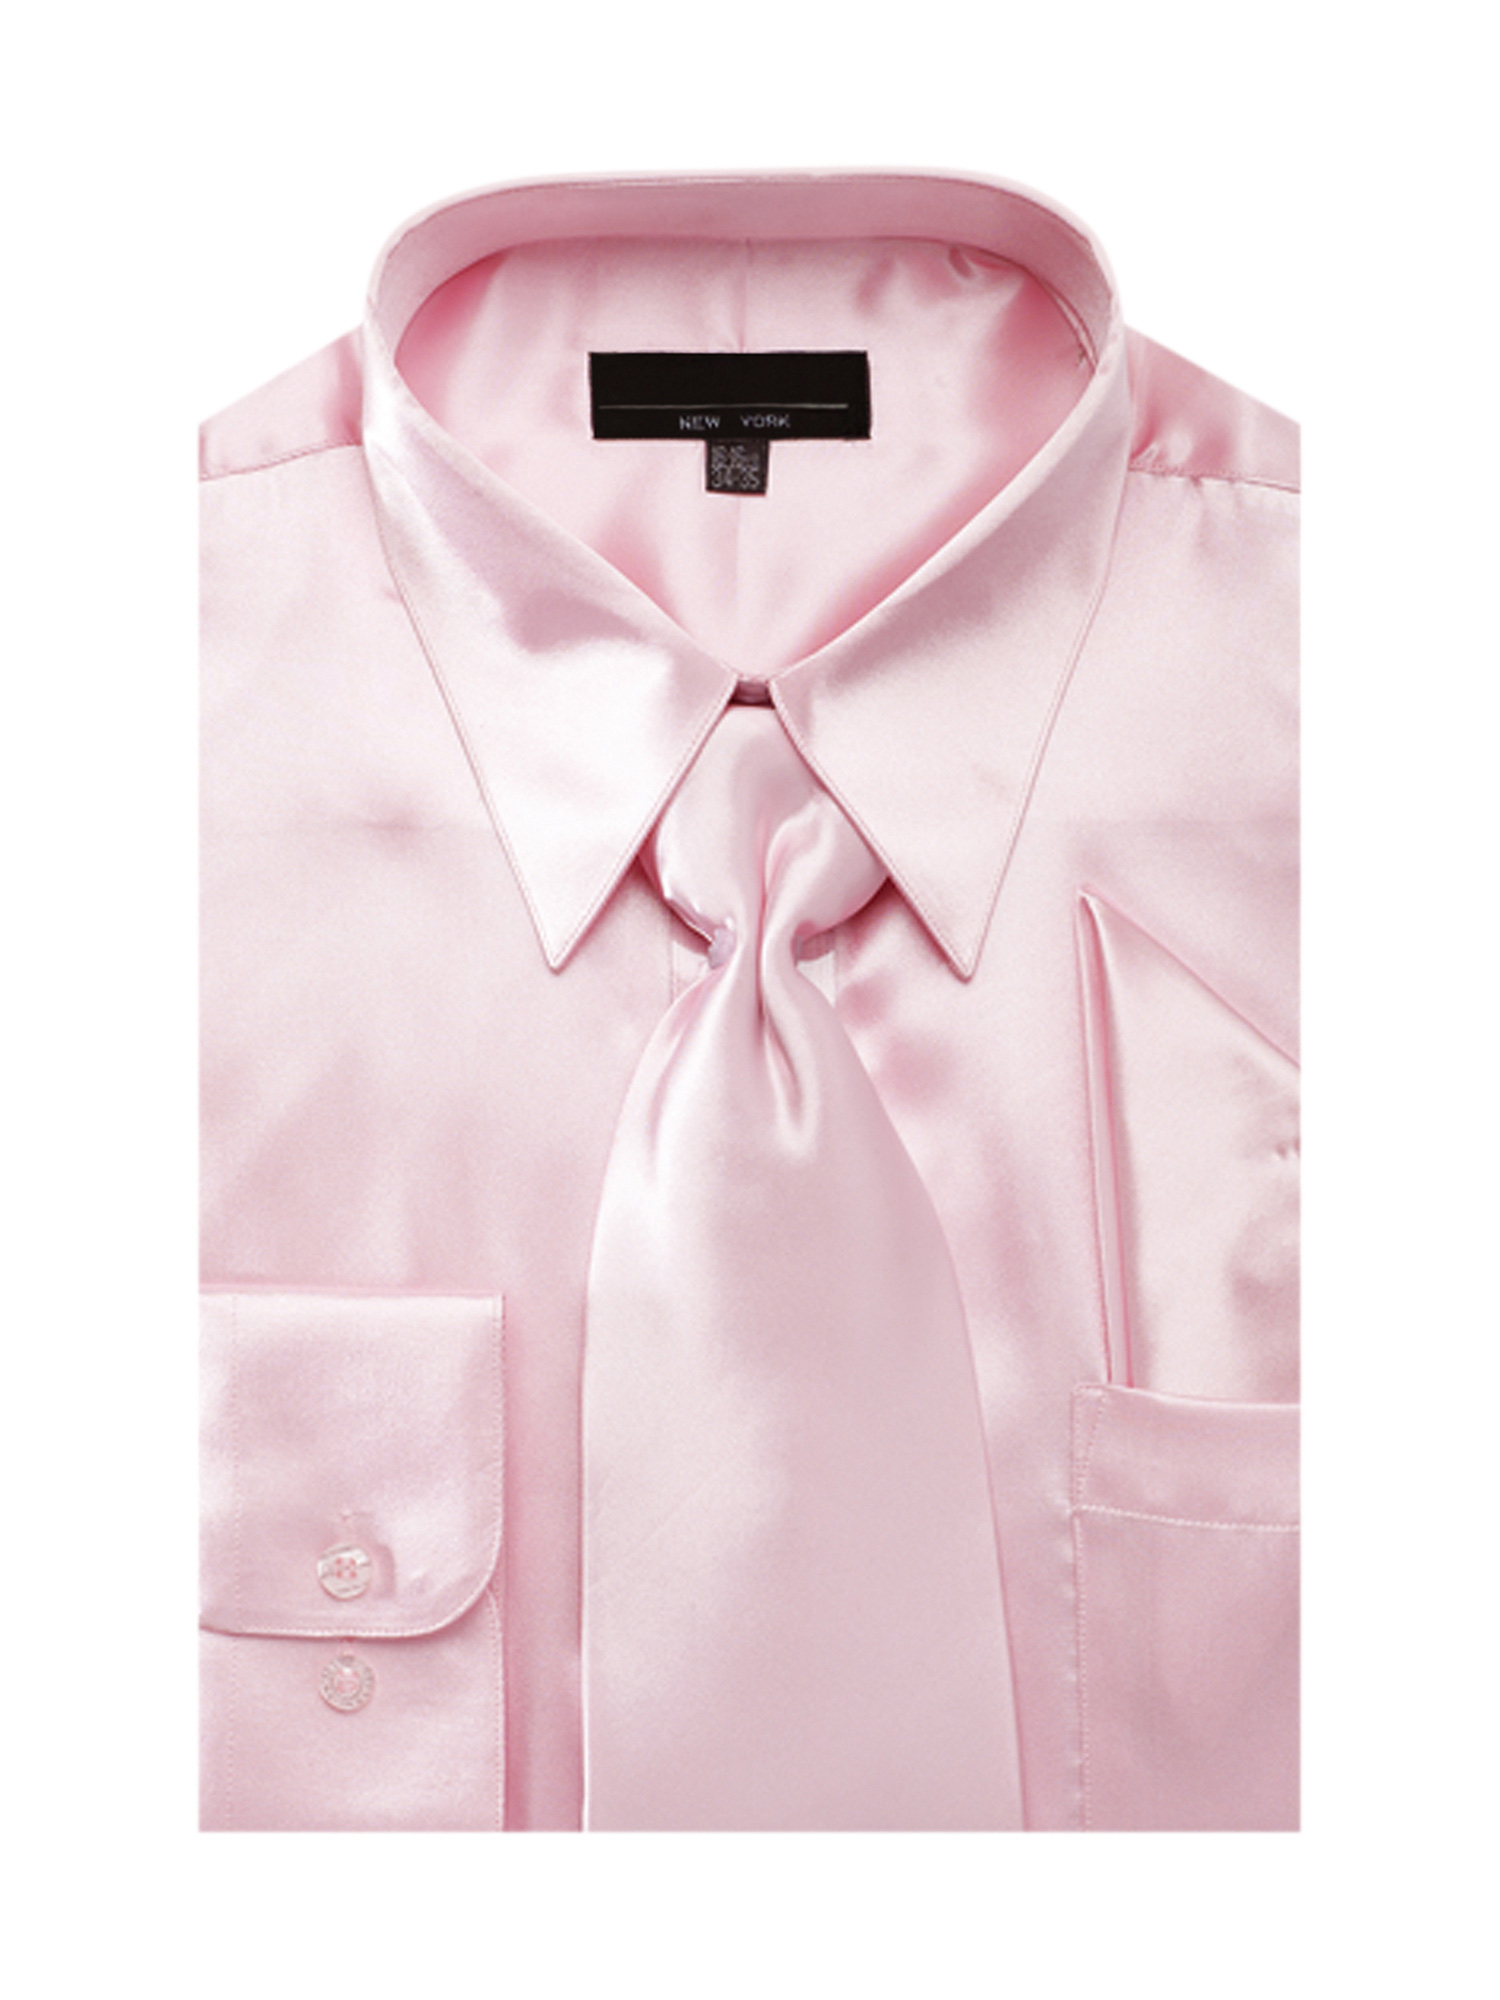 Men S Solid Color Satin Dress Shirt Tie And Hanky Set